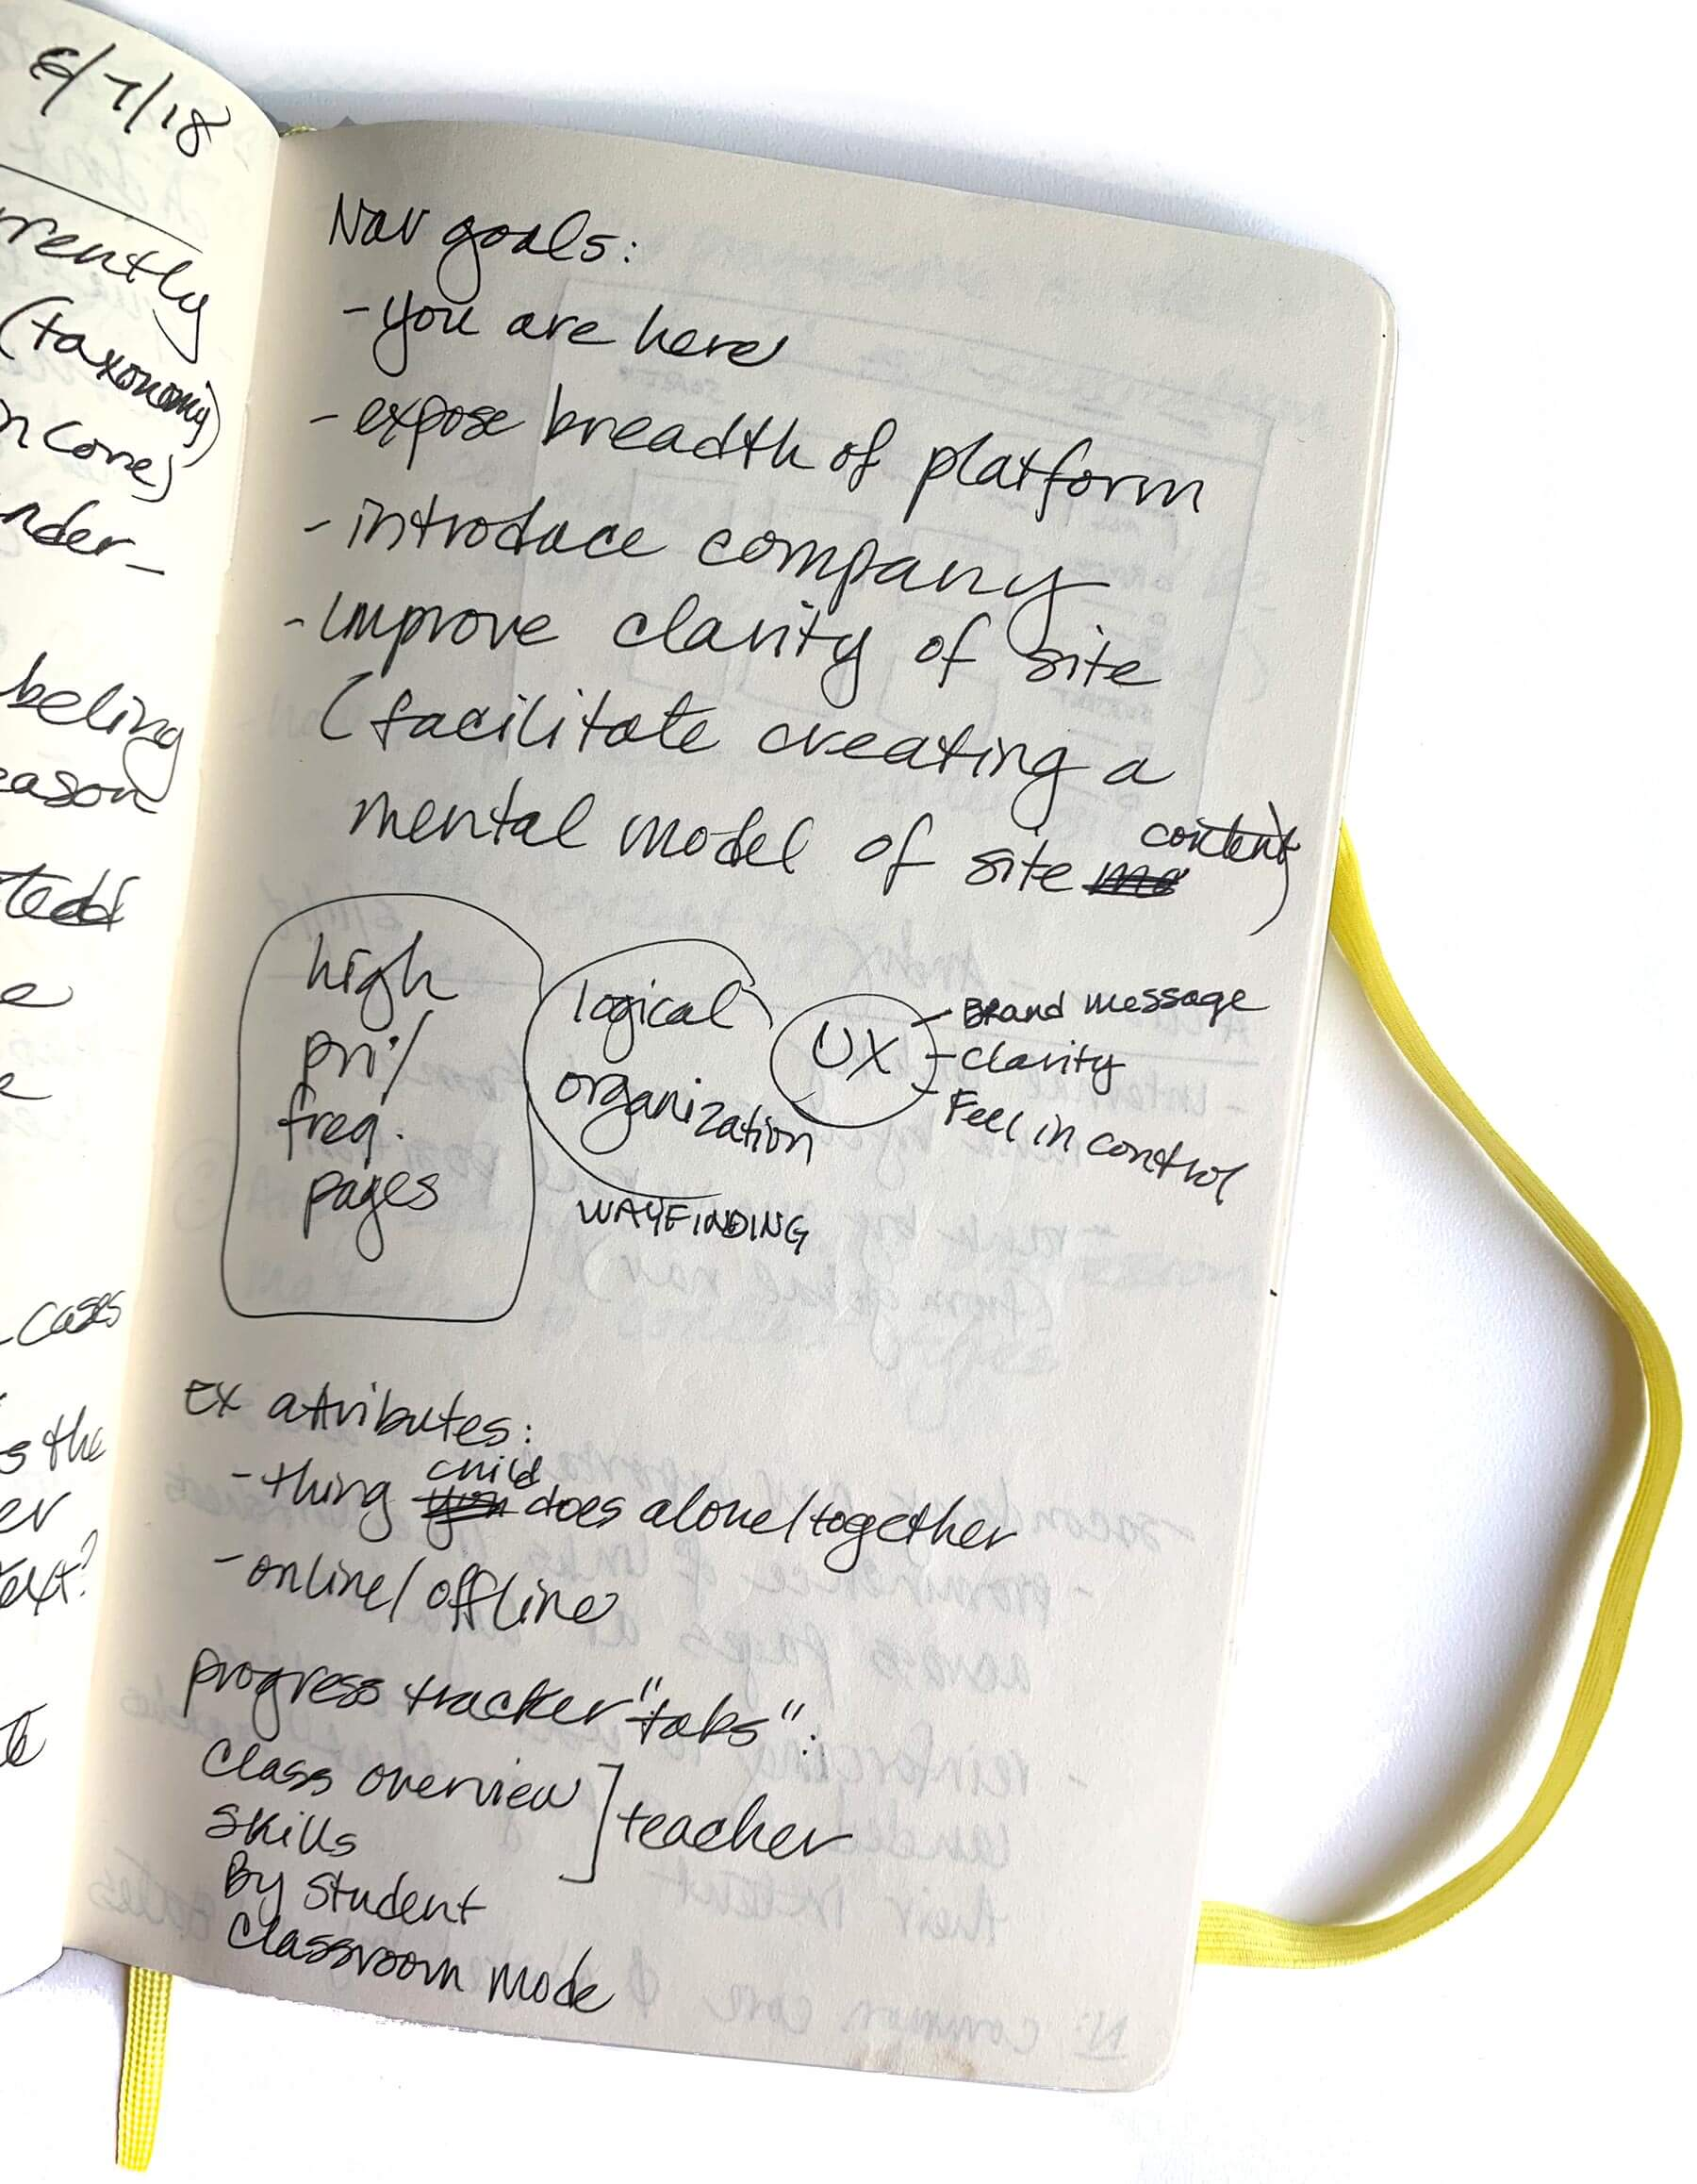 A photo of journal notes on navigation goals